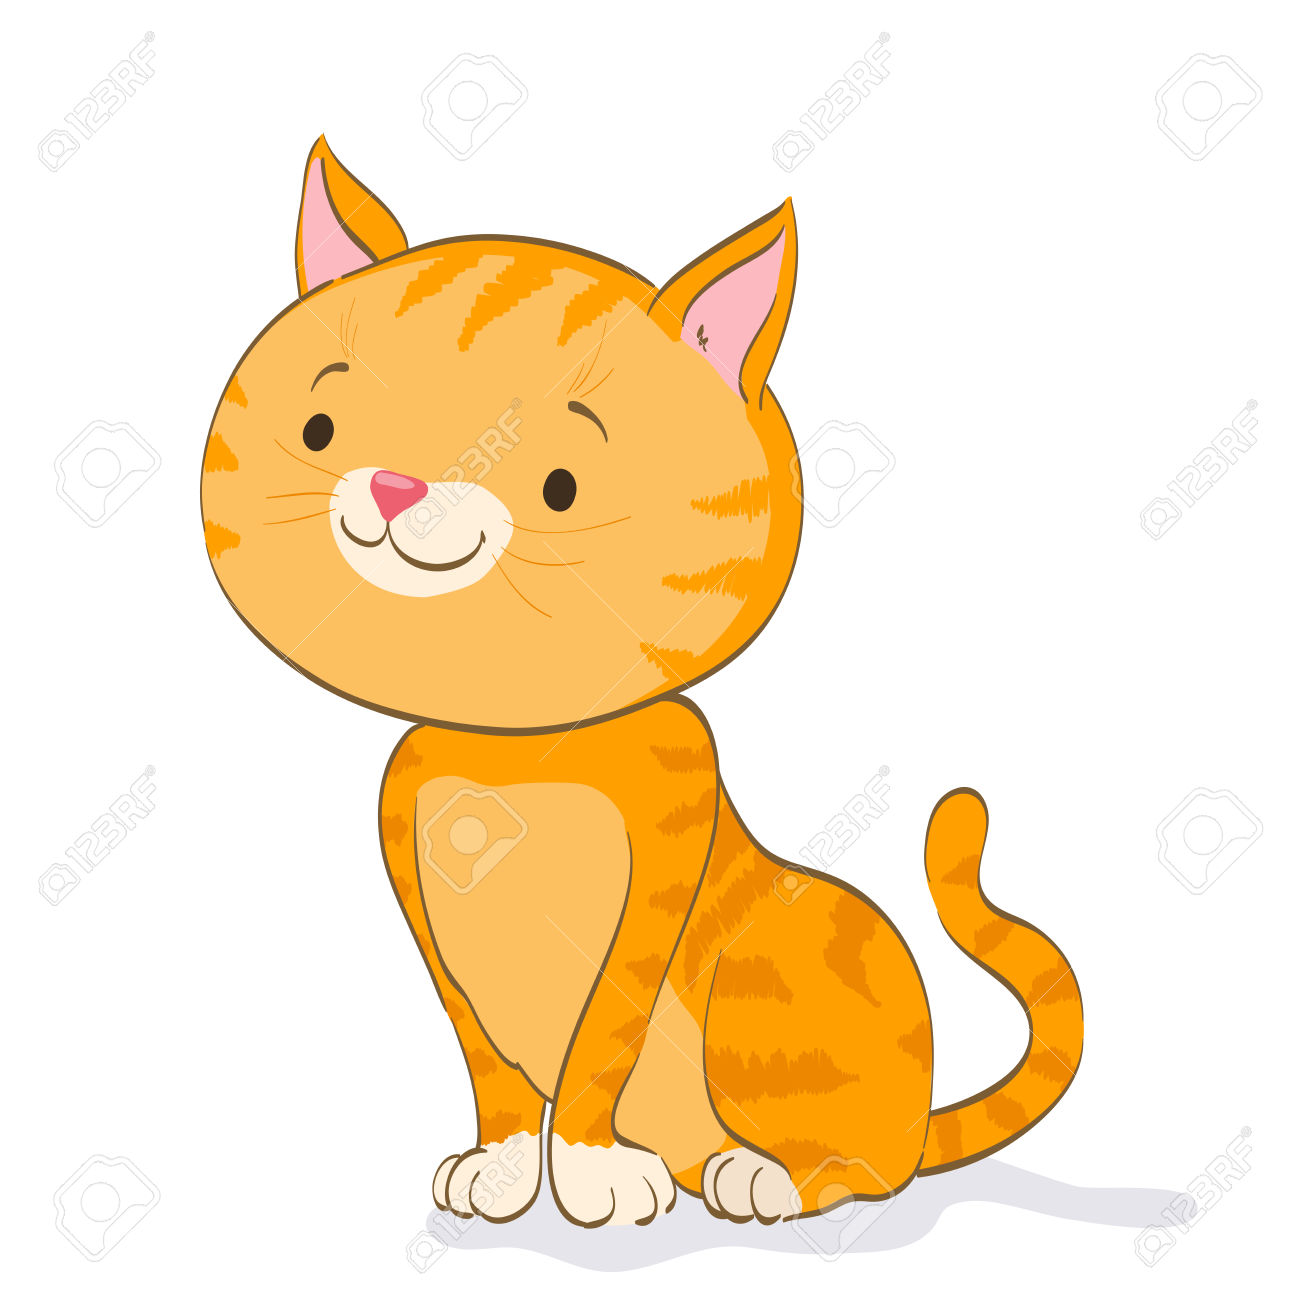 Picture Of Cartoon Cats | Free download best Picture Of Cartoon Cats ... image black and white library